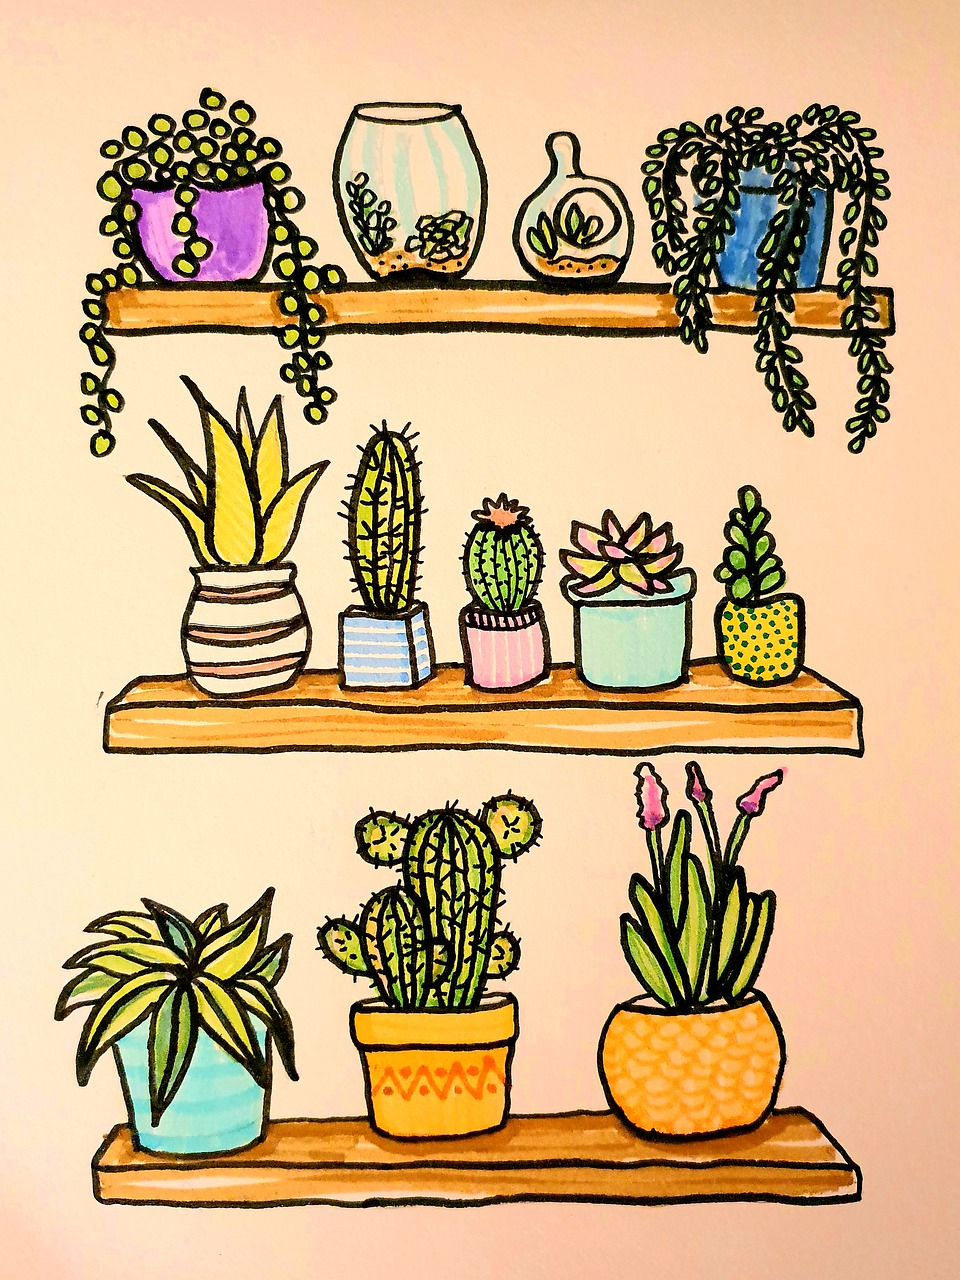 Variety of Houseplants